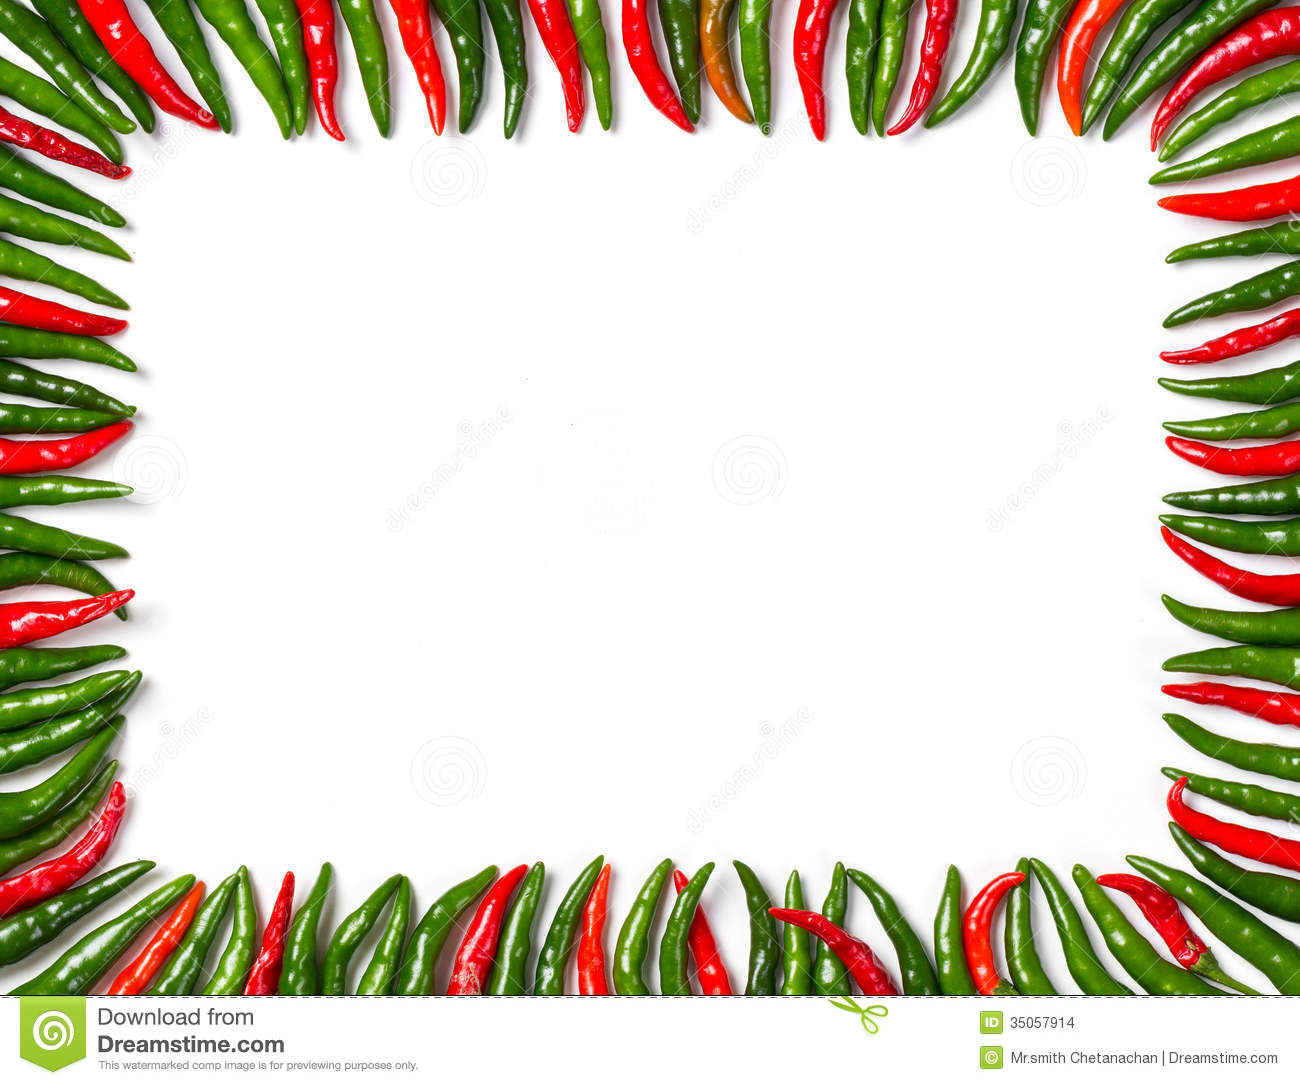 Rectangular Red And Green Bird Chili Frame Stock Images.